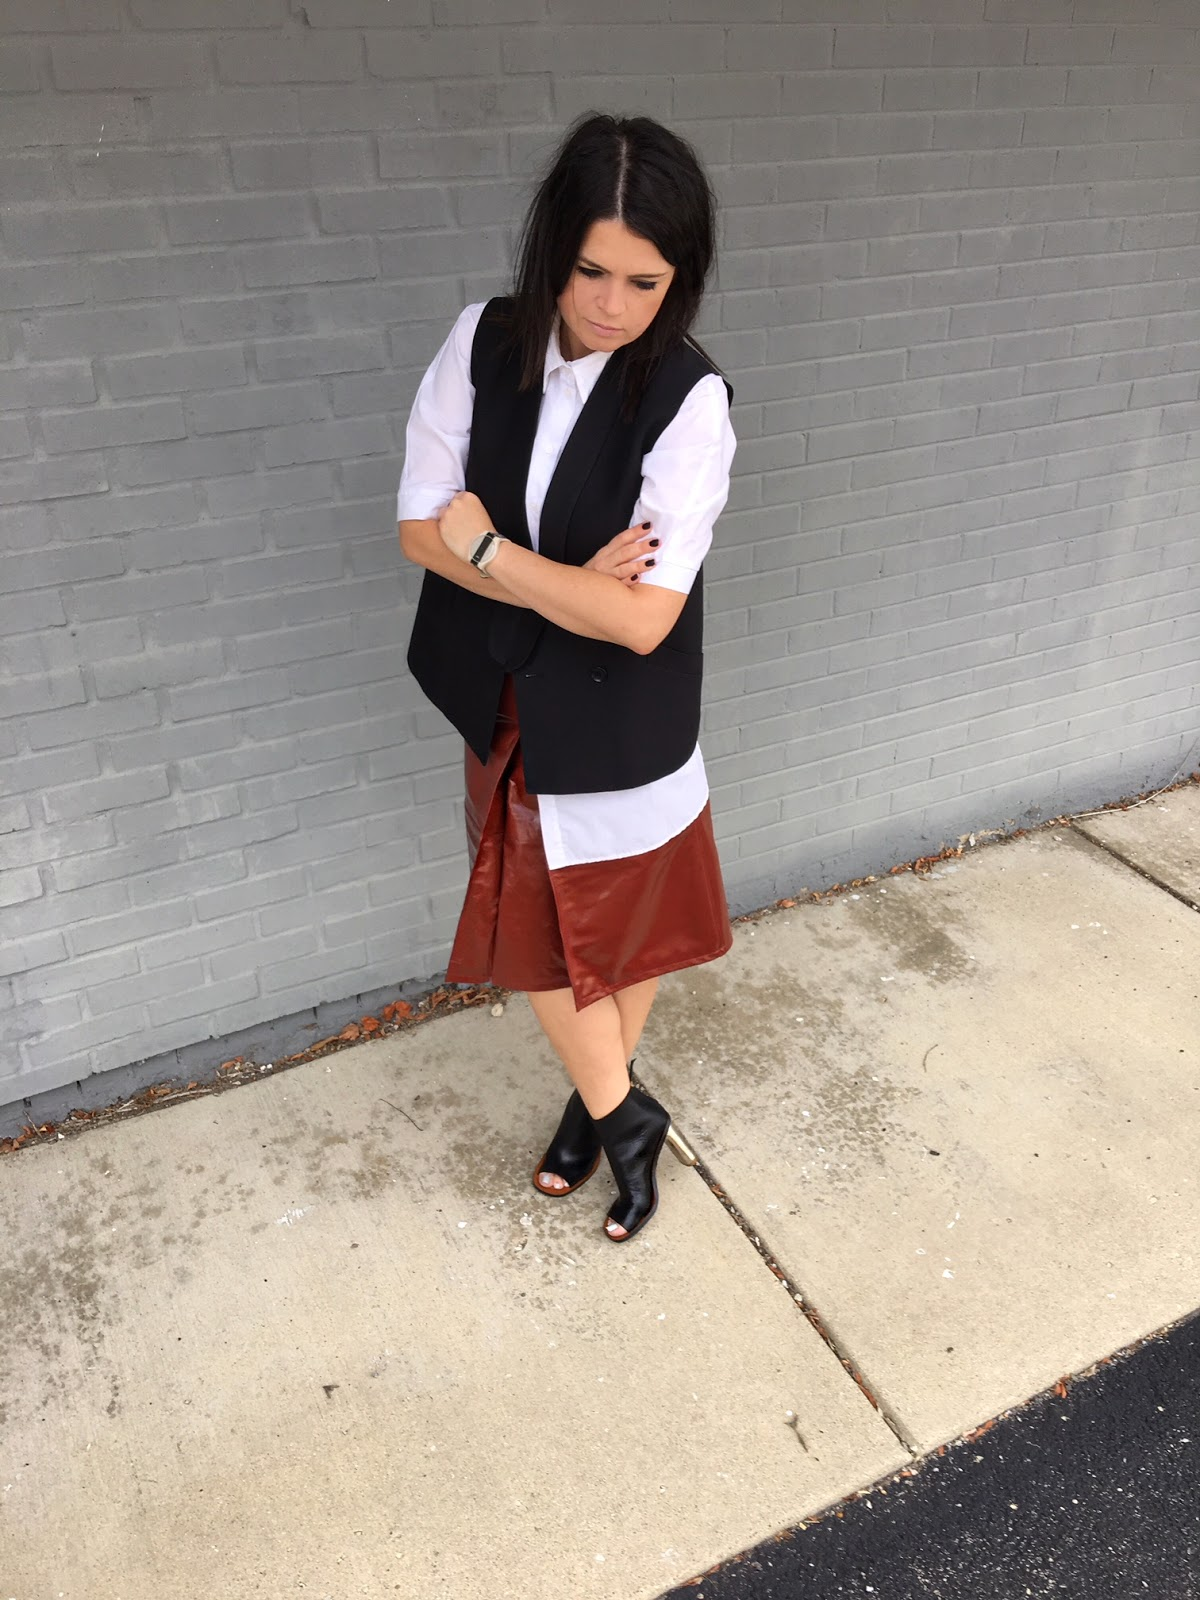 Patent leather skirt in rust color